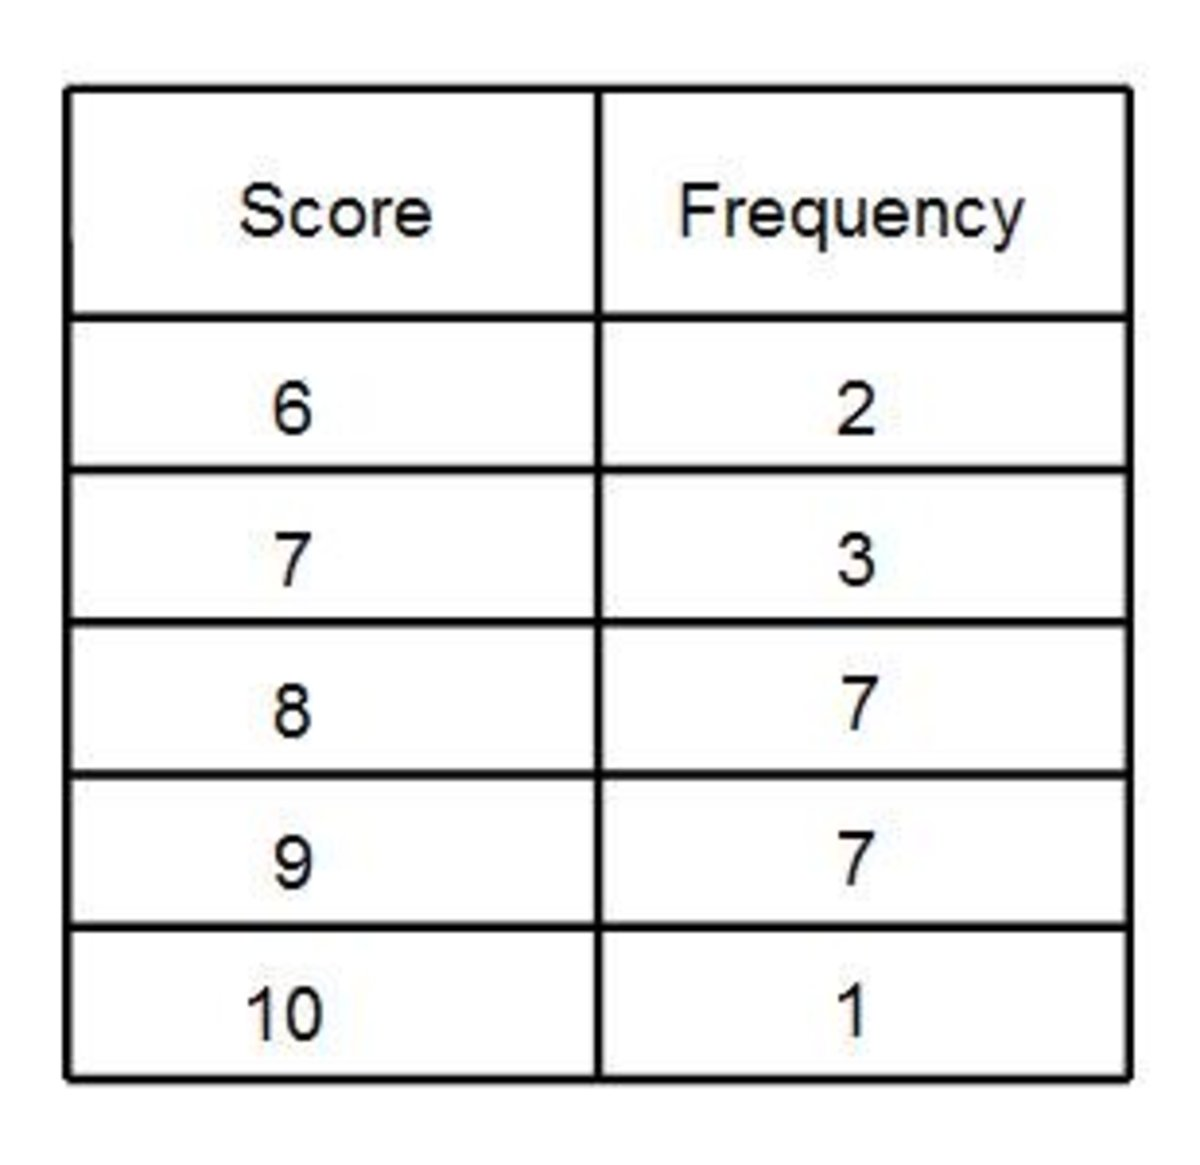 Mean From A Frequency Table. How To Work Out The Mean Average From A Frequency Table.